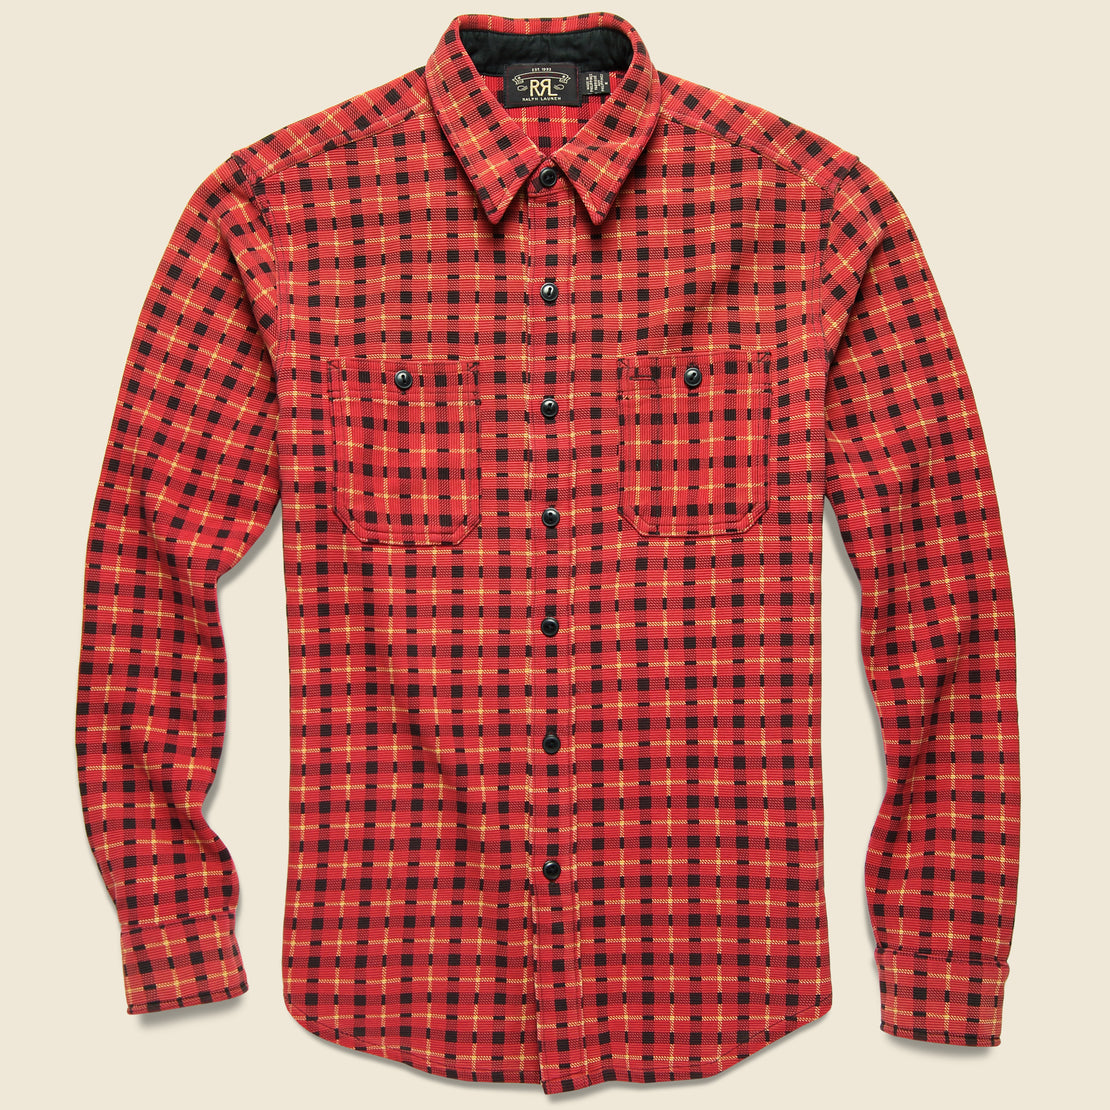 RRL Ottoman Knit Workshirt - Red/Gold/Black Plaid